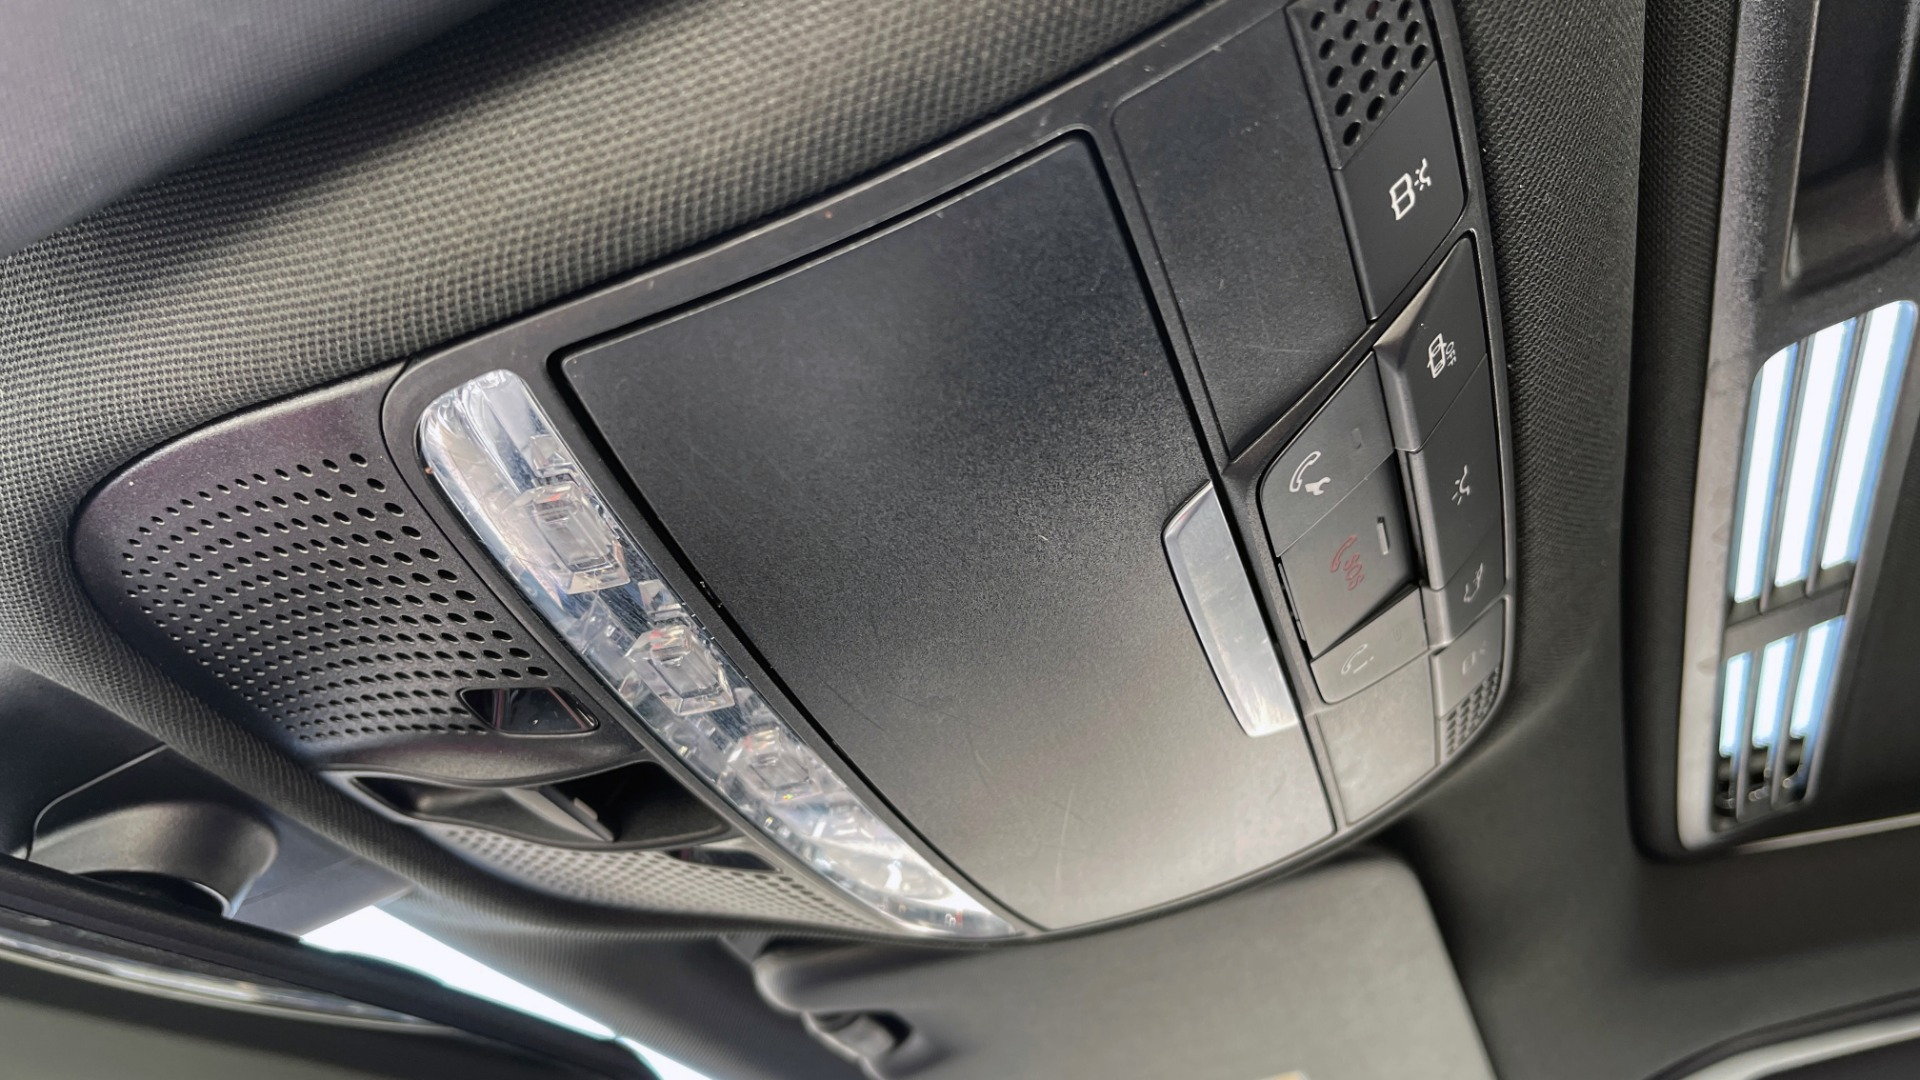 Used 2018 Mercedes-Benz C-CLASS C 300 PREMIUM / APPLE CARPLAY / KEYLESS-GO / SUNROOF / REARVIEW for sale $32,995 at Formula Imports in Charlotte NC 28227 39